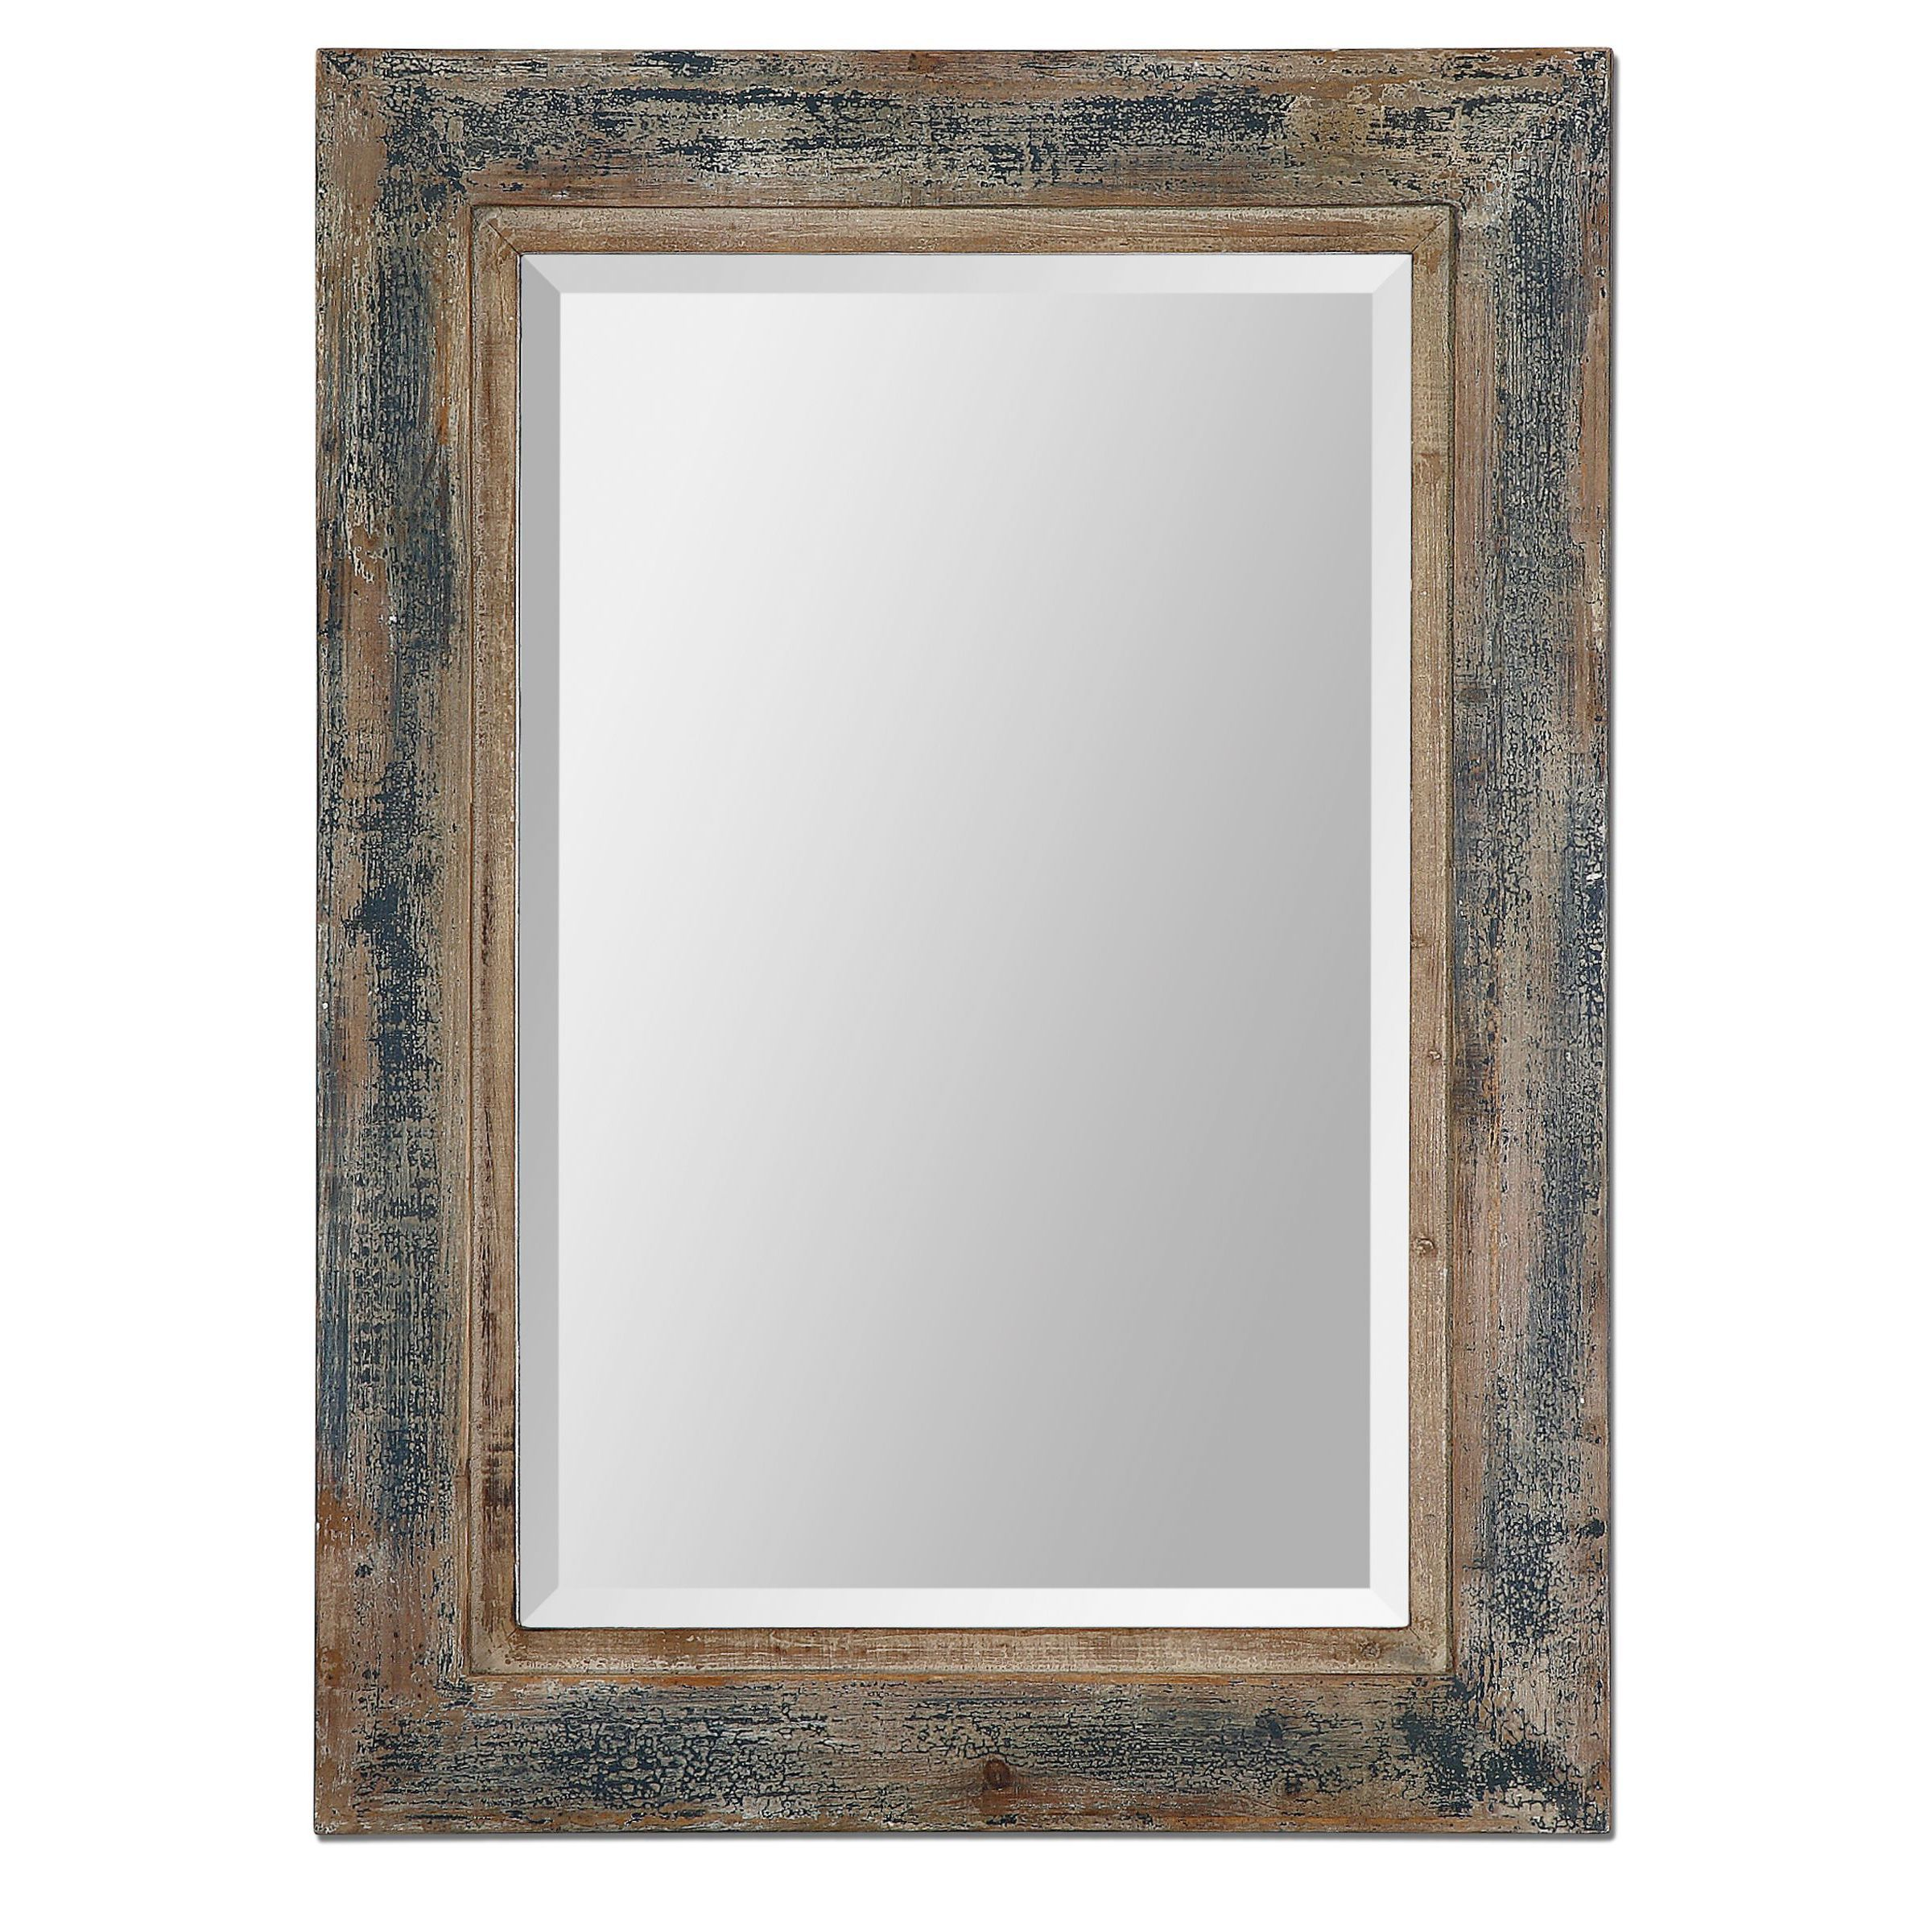 Decorative Mirror This Blue Decorative Mirror Showcases A Wood Frame Border With A